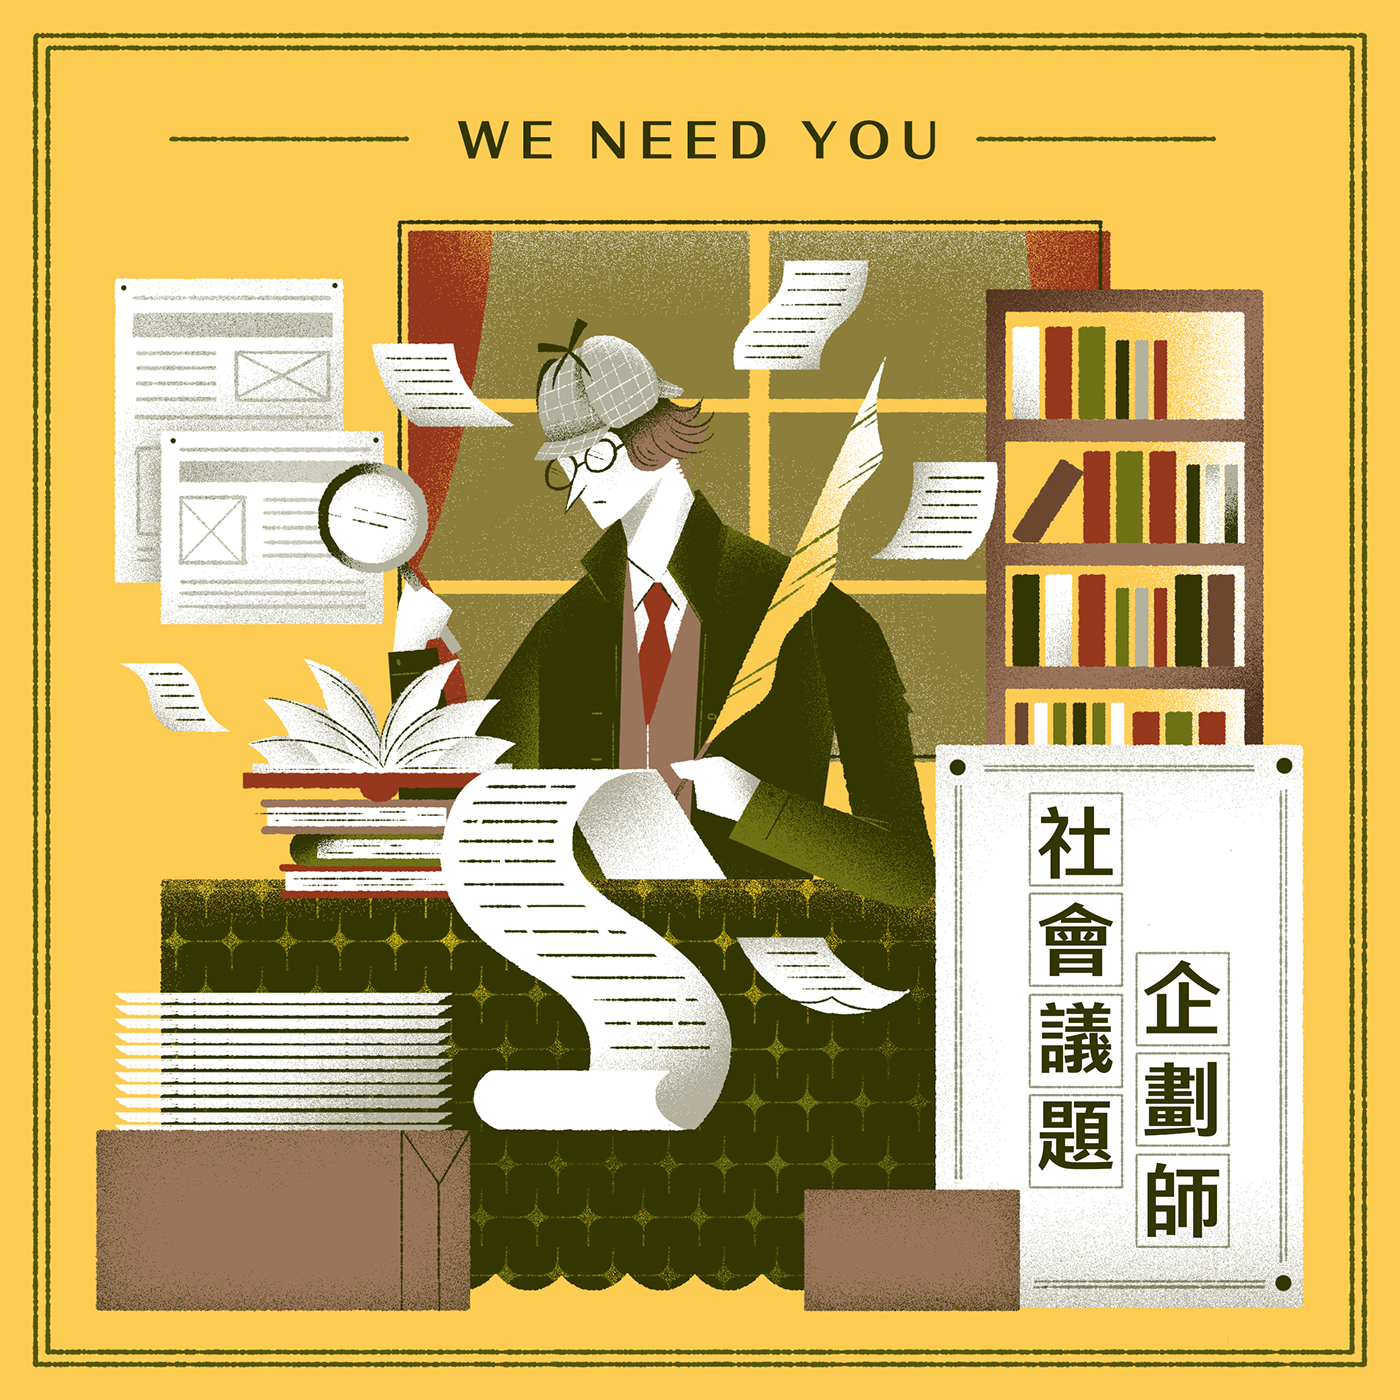 徵人插畫 Recruitment Illustration on Behance